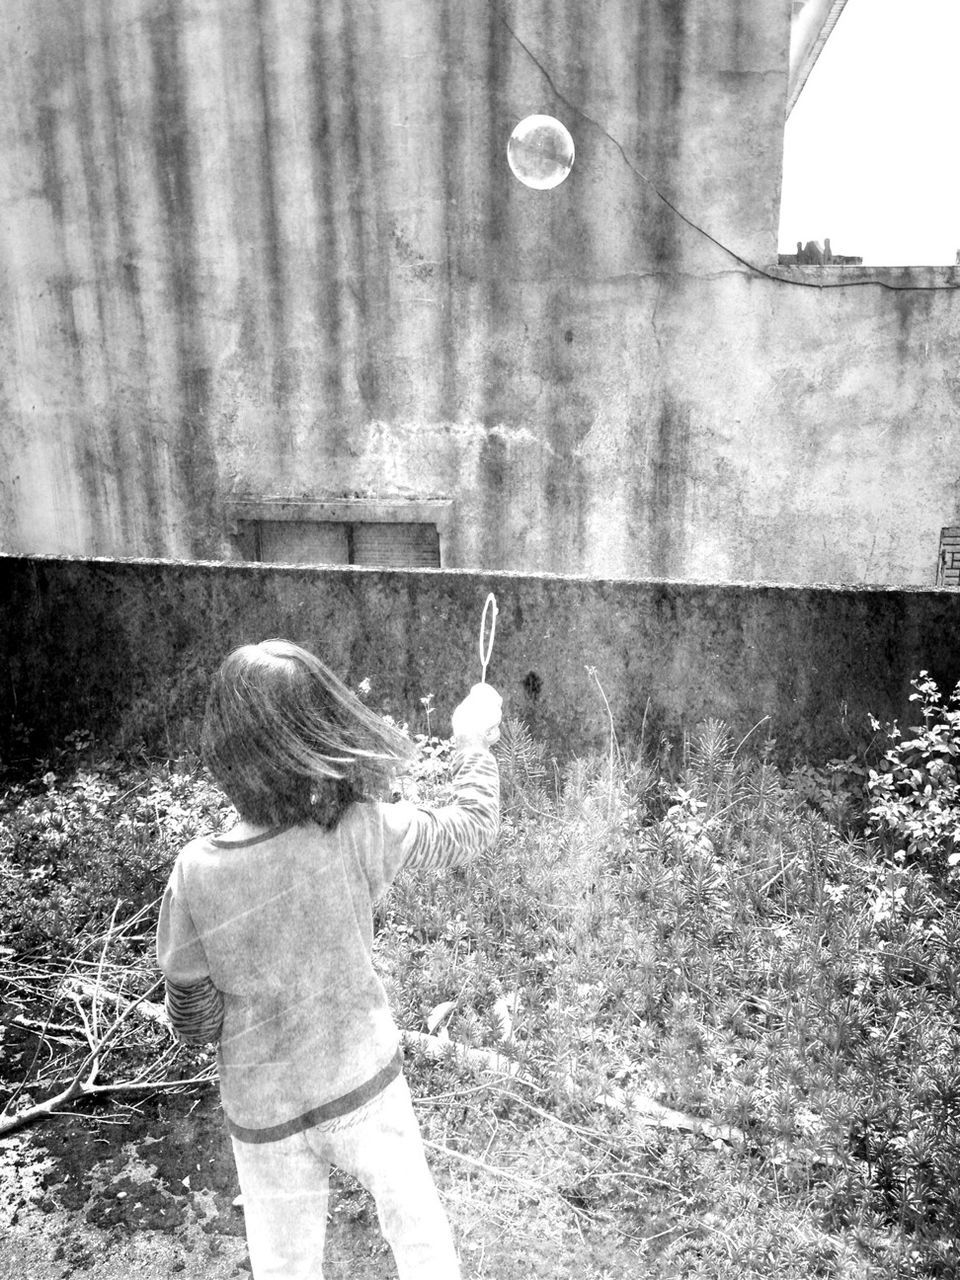 Rear View Of Girl Making Bubble With Wand Against House